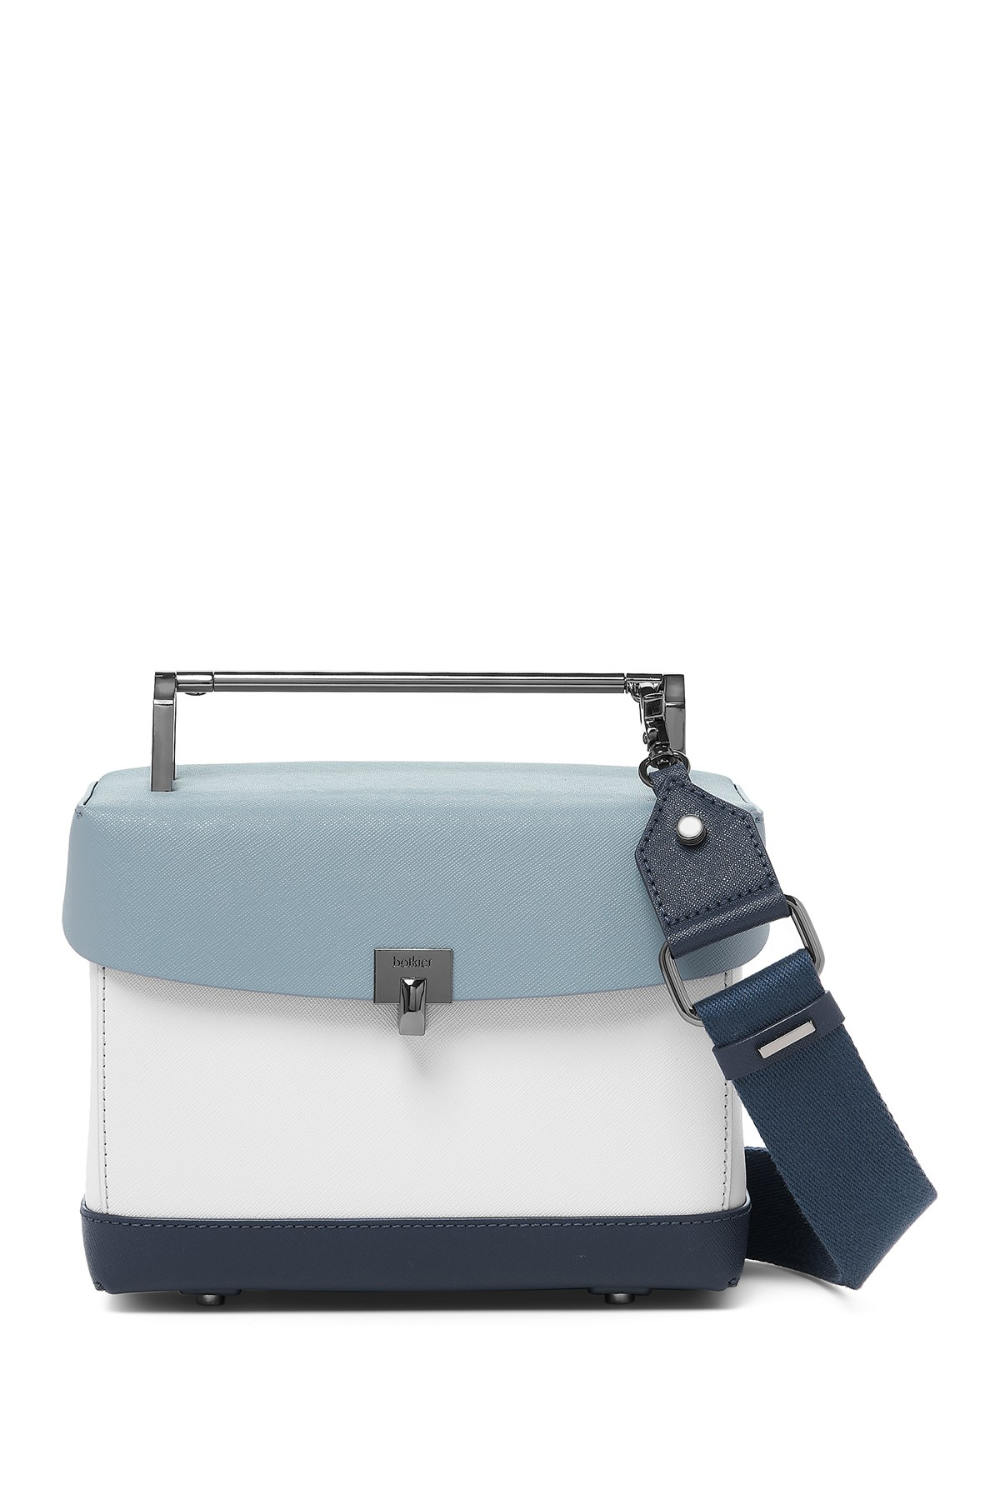 Botkier | Lennox Lunchbox Leather Crossbody Bag #nordstromrack